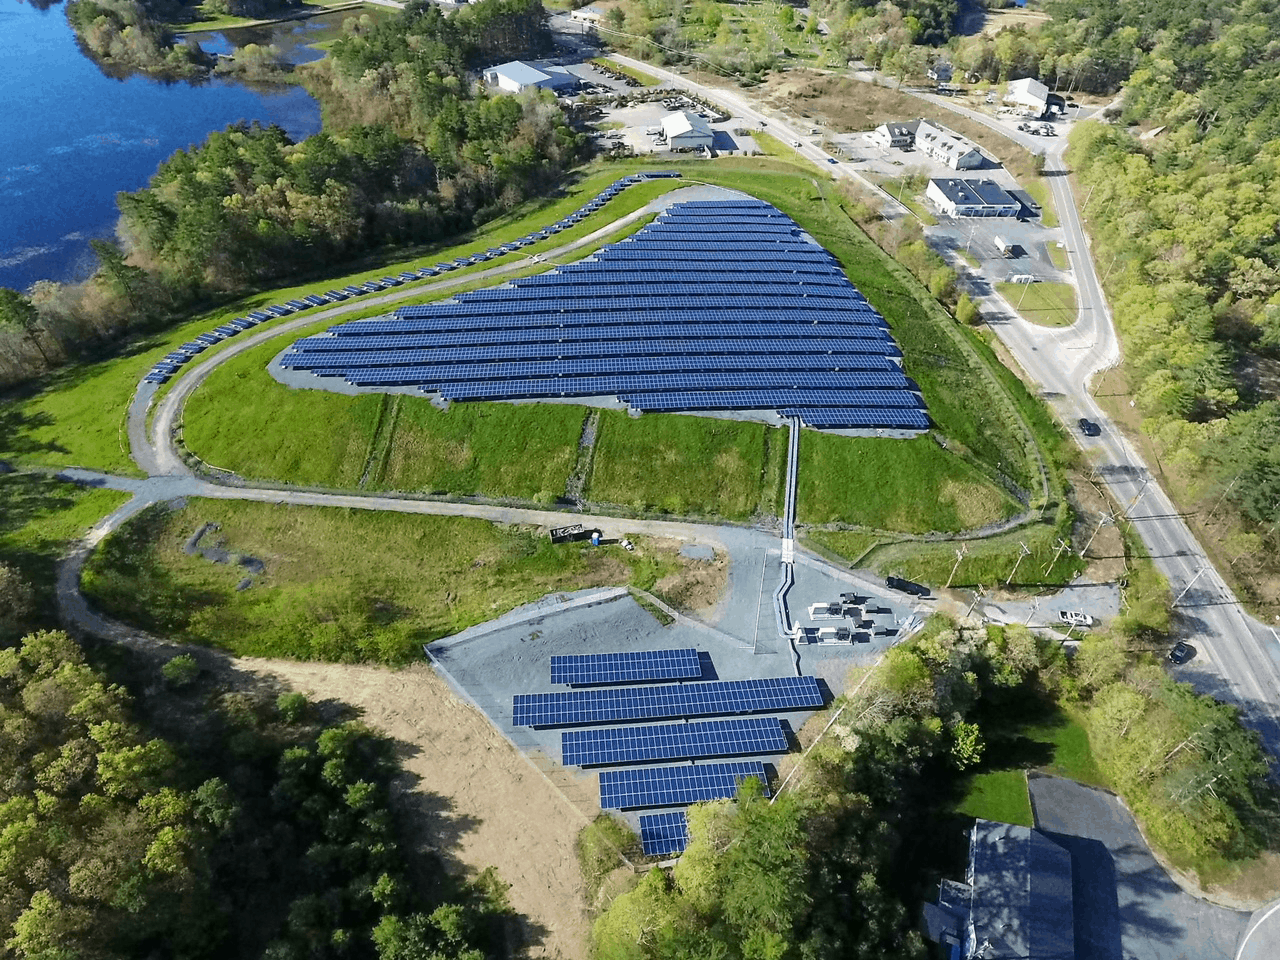 Captona Partners completes acquisition of 3 Solar PV systems on landfills with Waste Management